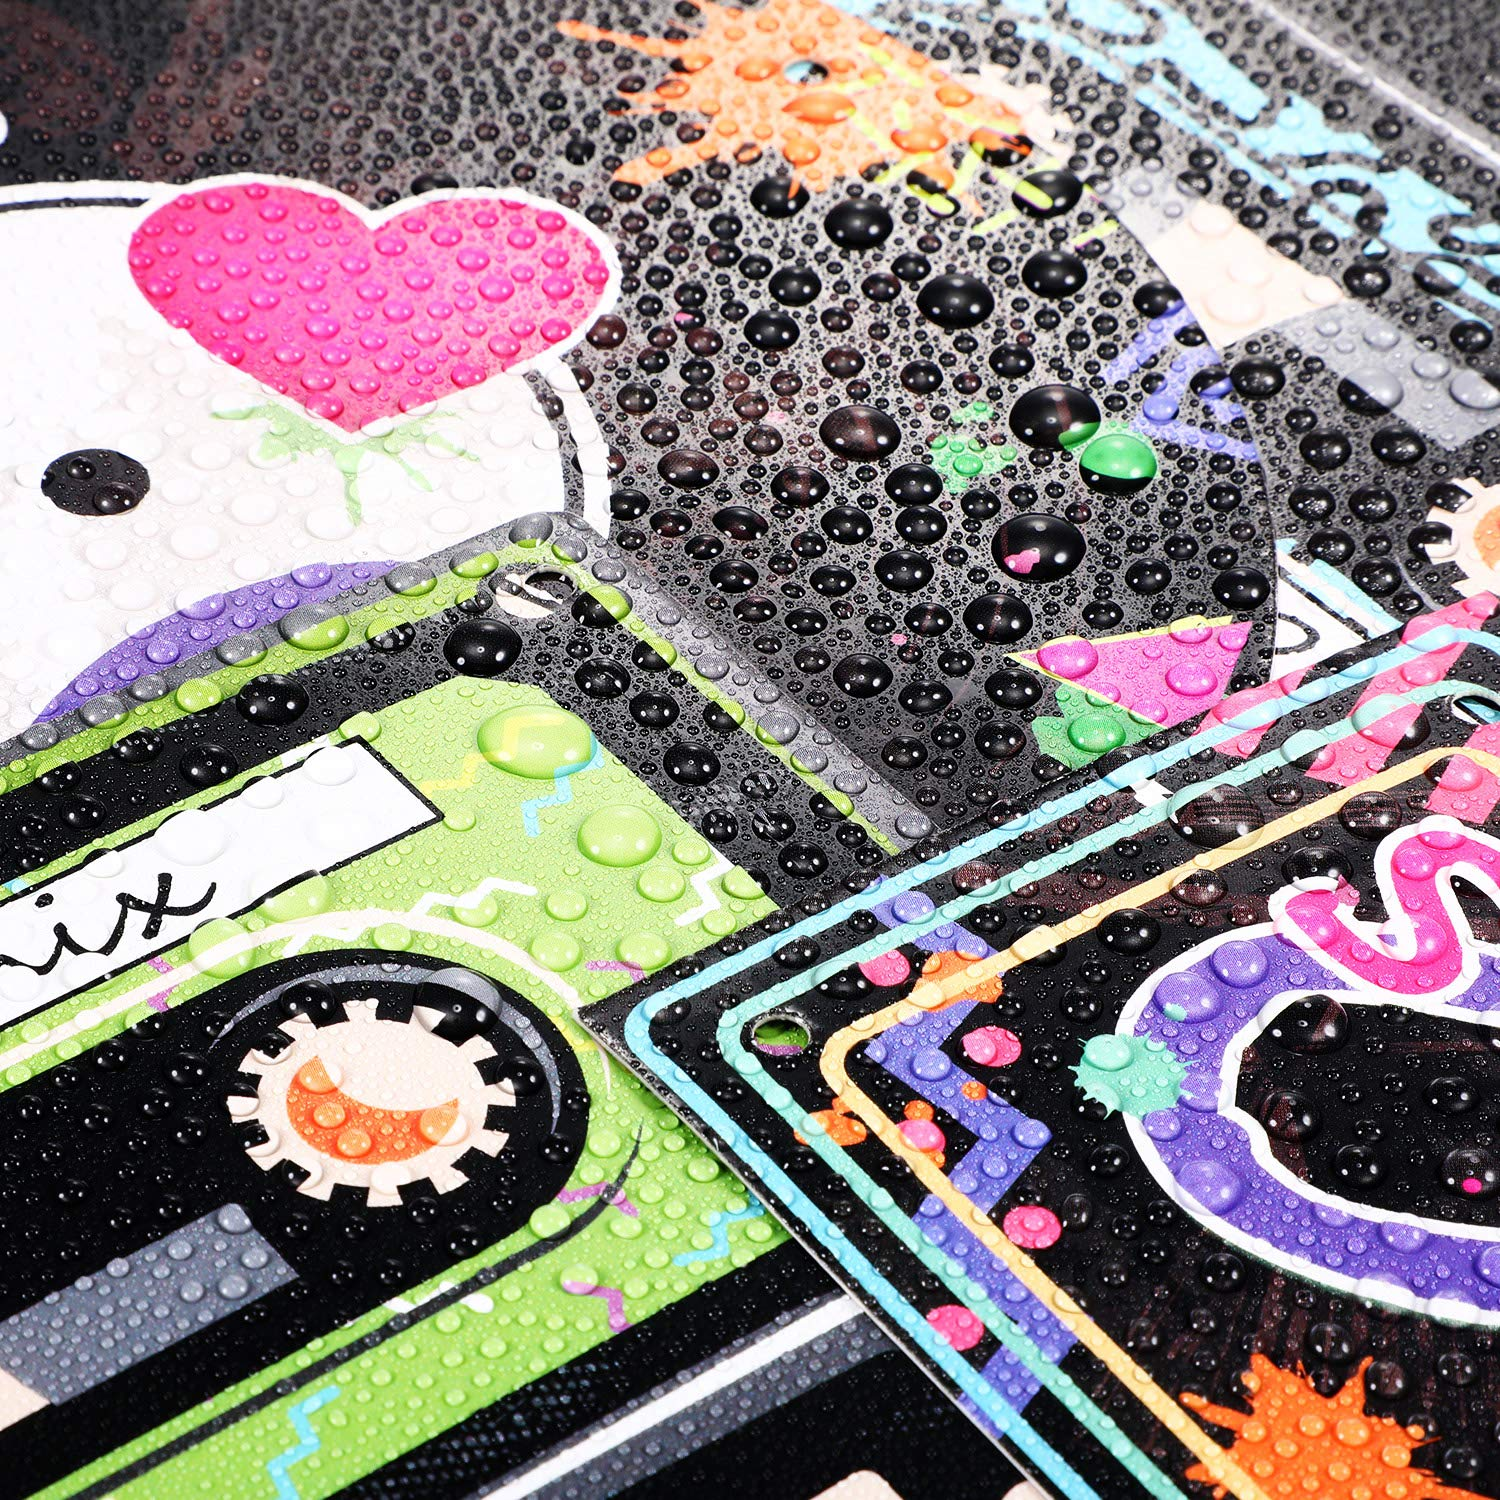 80s Party Supplies 24 Pieces Cassette Tape Cutouts with 7 Different 80s Style 1980s Party Decorations 80s Theme Party Hanging Cards Decorating Kit Retro Design with 2 Ropes and 40 Glue Point Dots